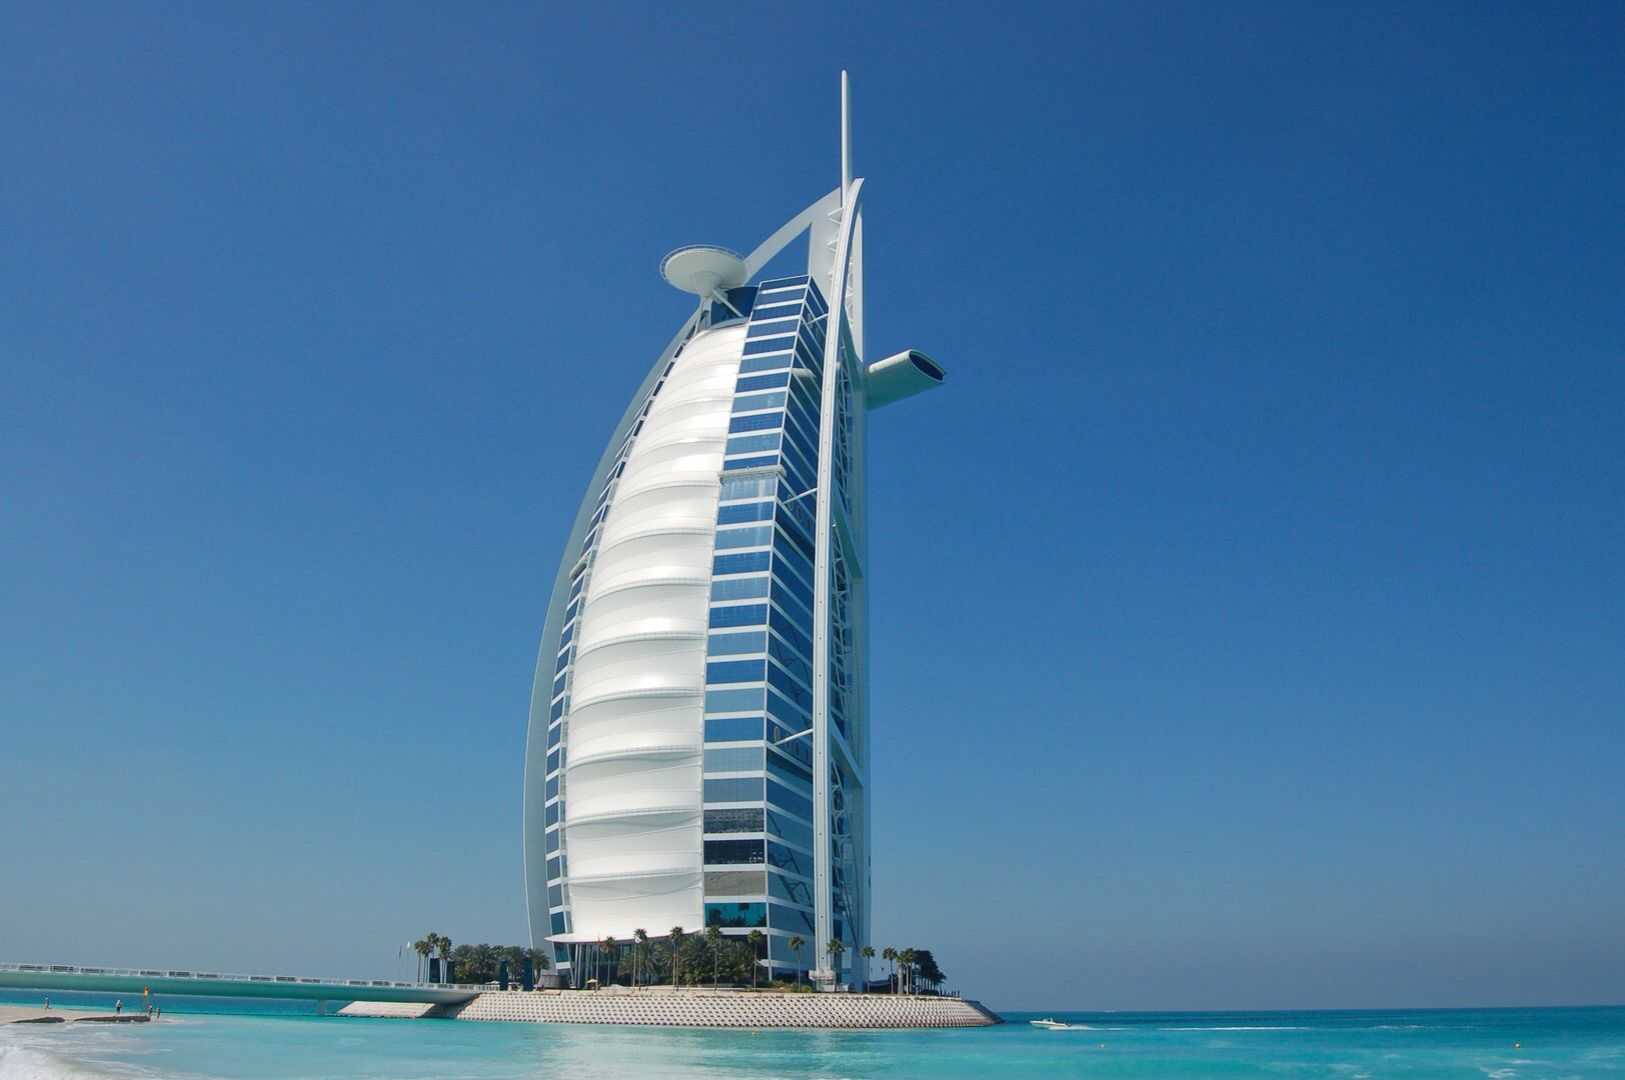 Seven star hotel in dubai dubai pinterest for 4 star hotels in dubai